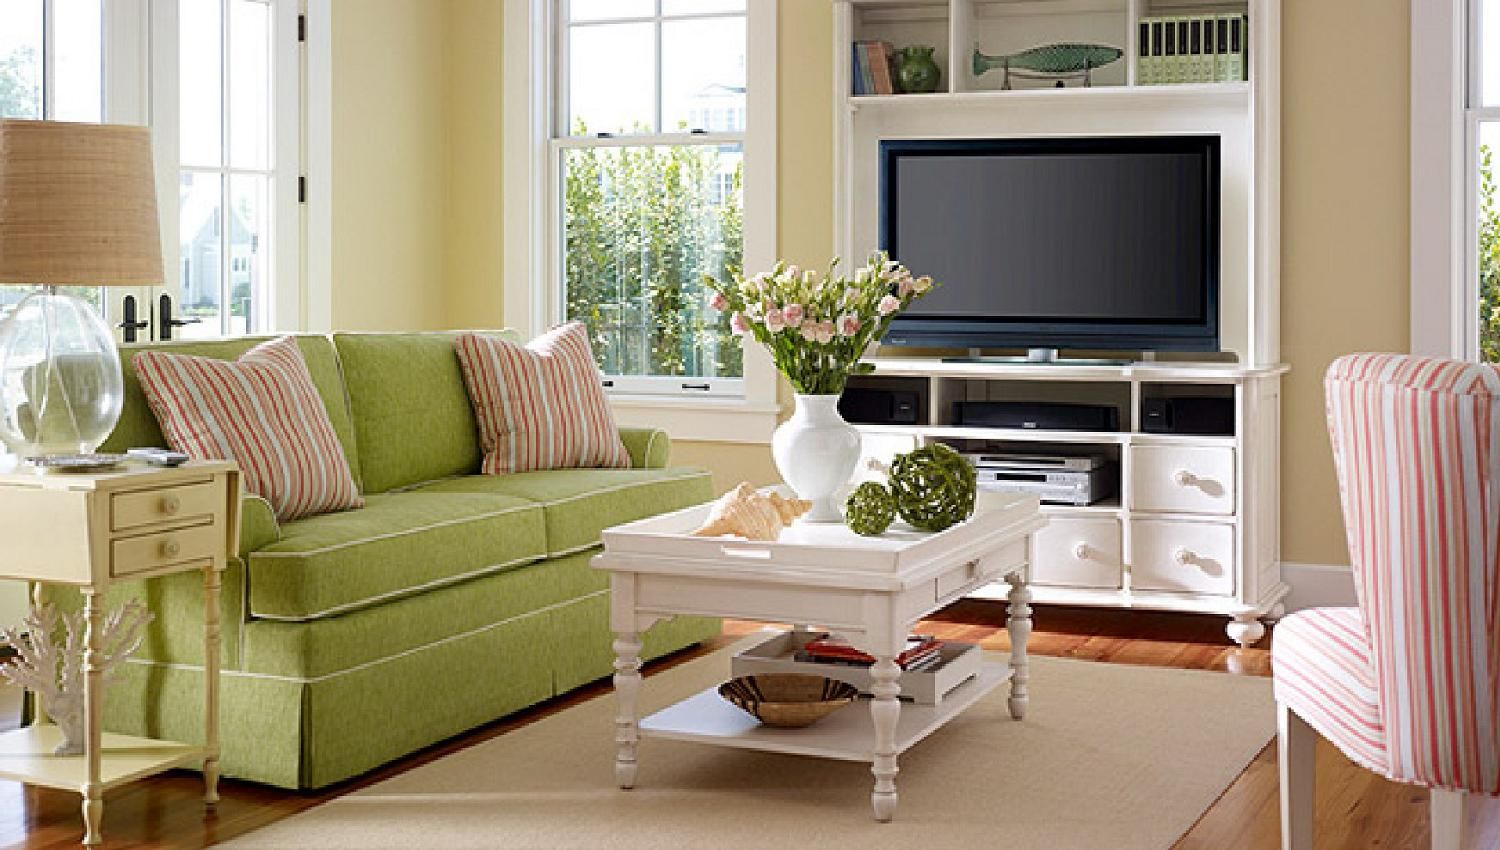 Living Room Pictures Of Sitting Rooms 1000 images about misc home on pinterest brown sofas living rooms and couch